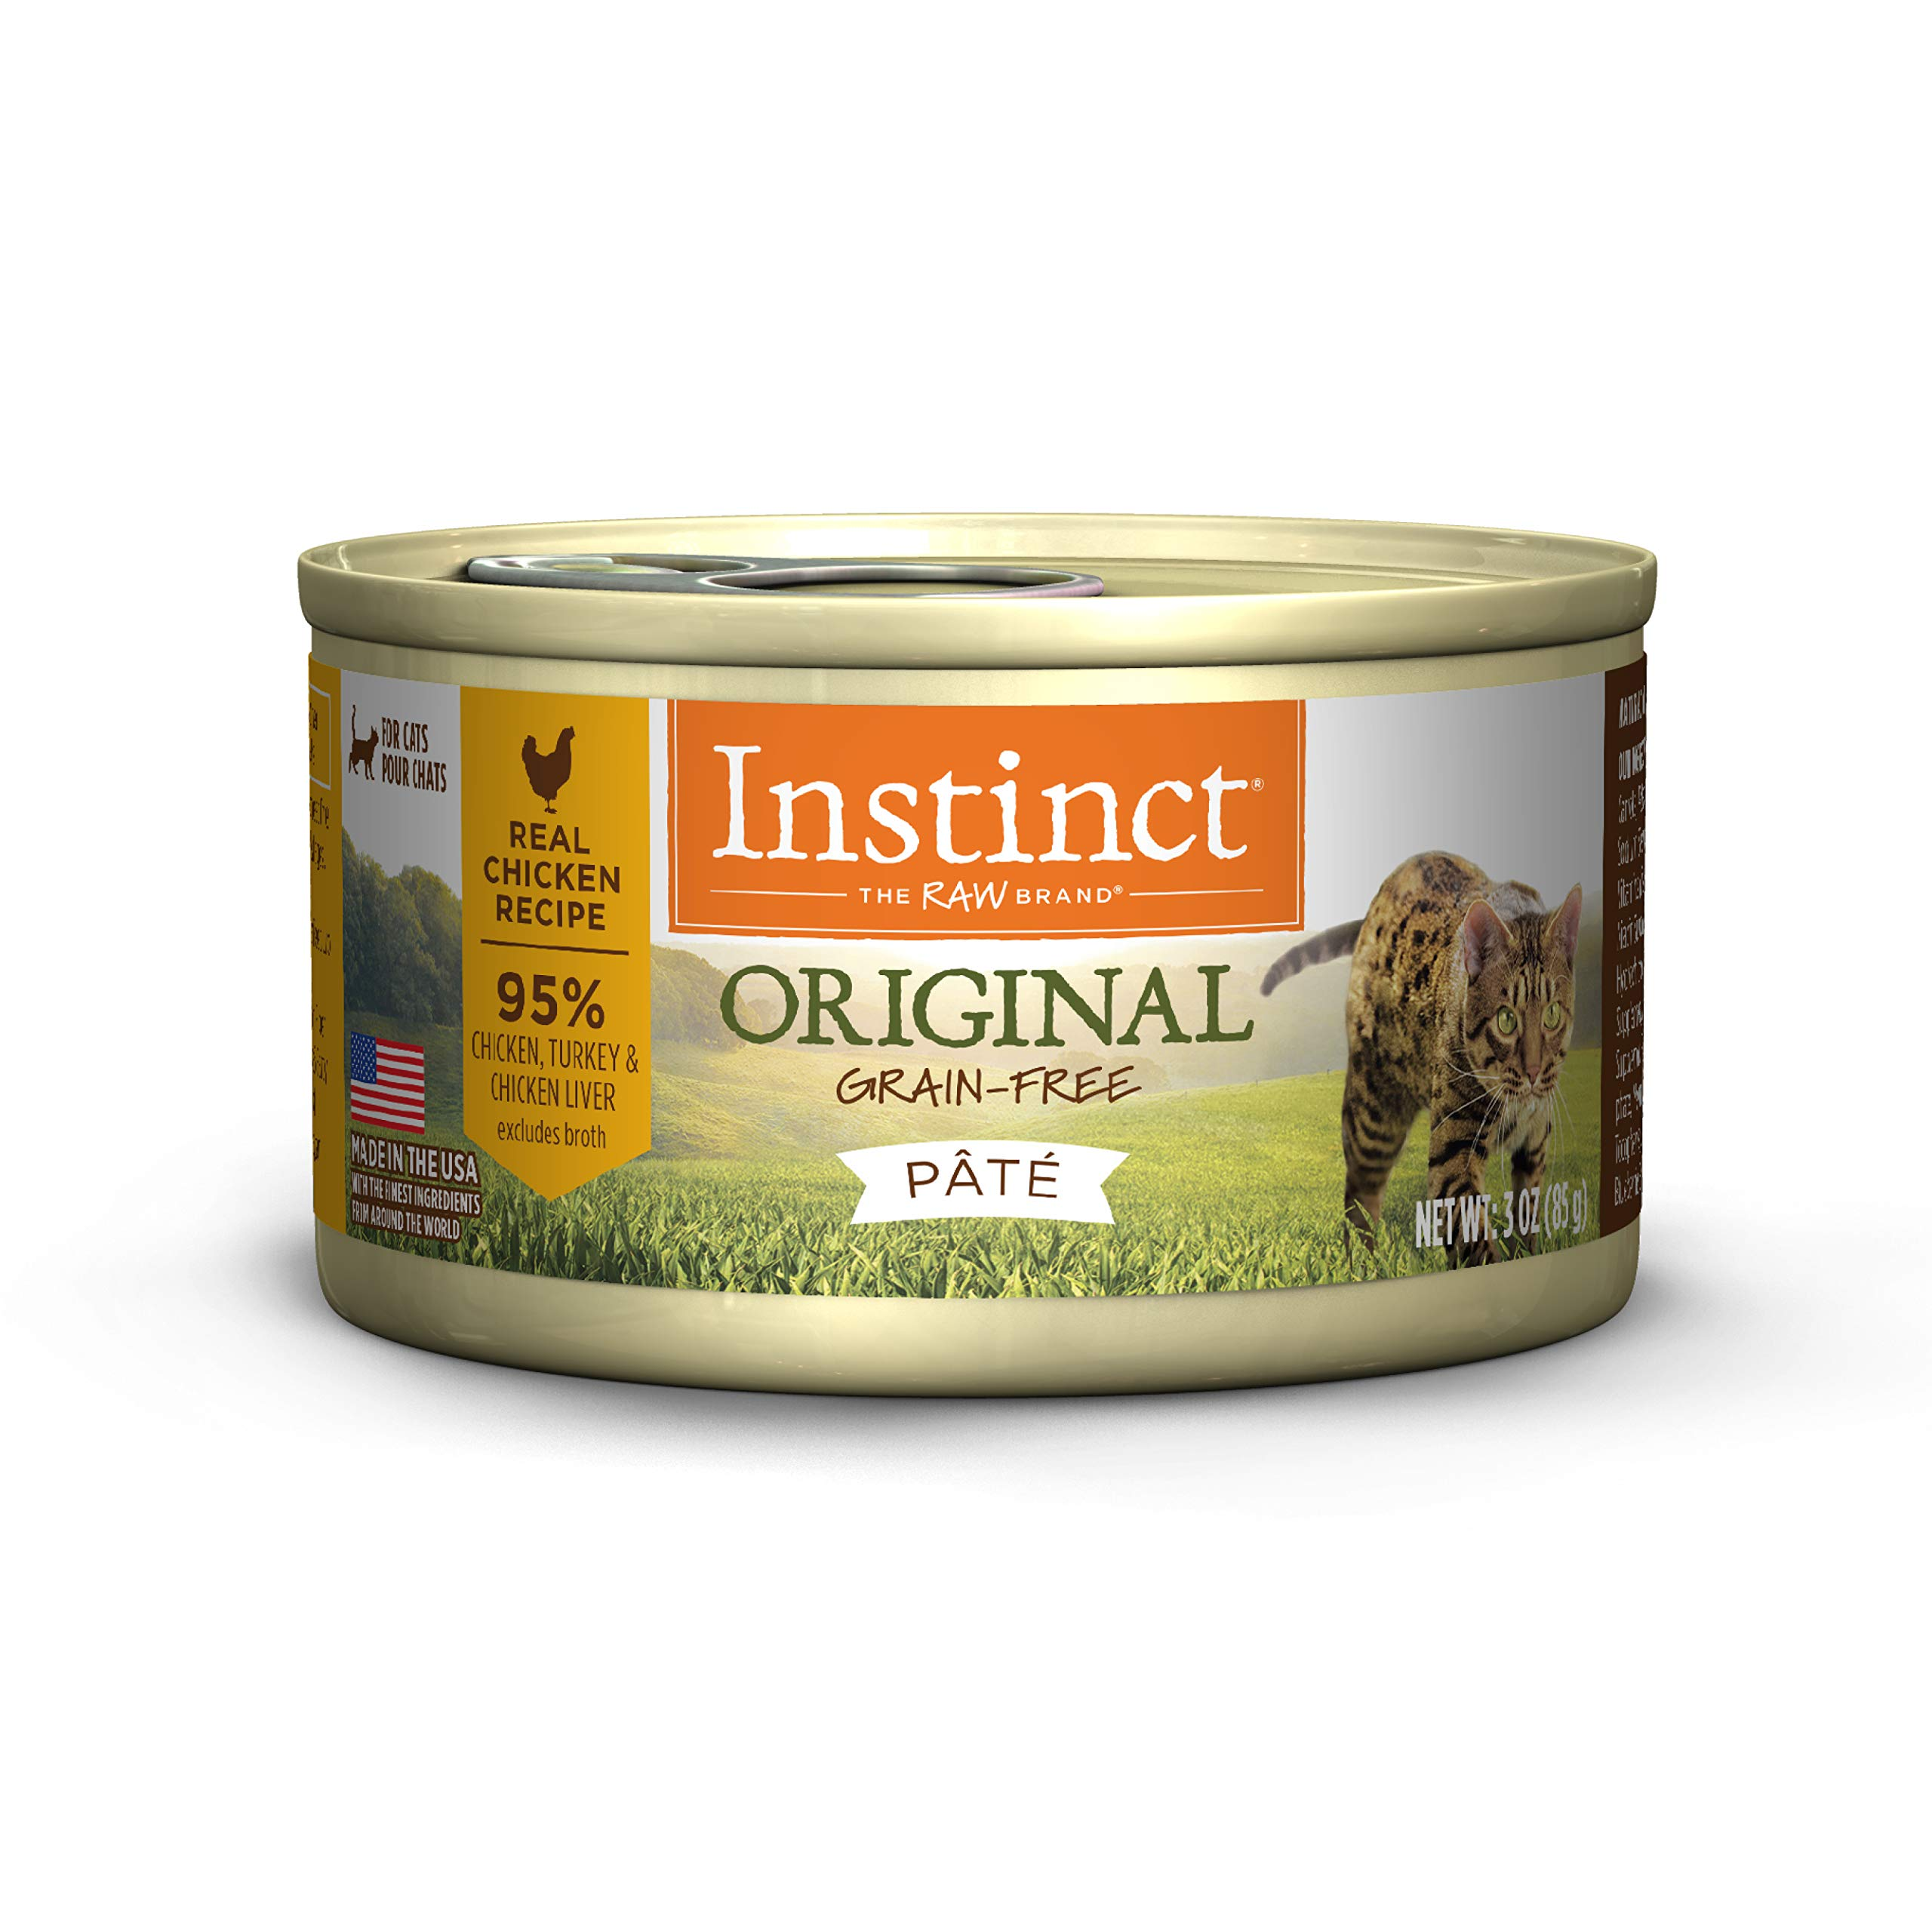 Instinct Original Grain Free Real Chicken Recipe Natural Wet Canned Cat Food by Nature's Variety, 3 oz. Cans (Case of 24) by Instinct